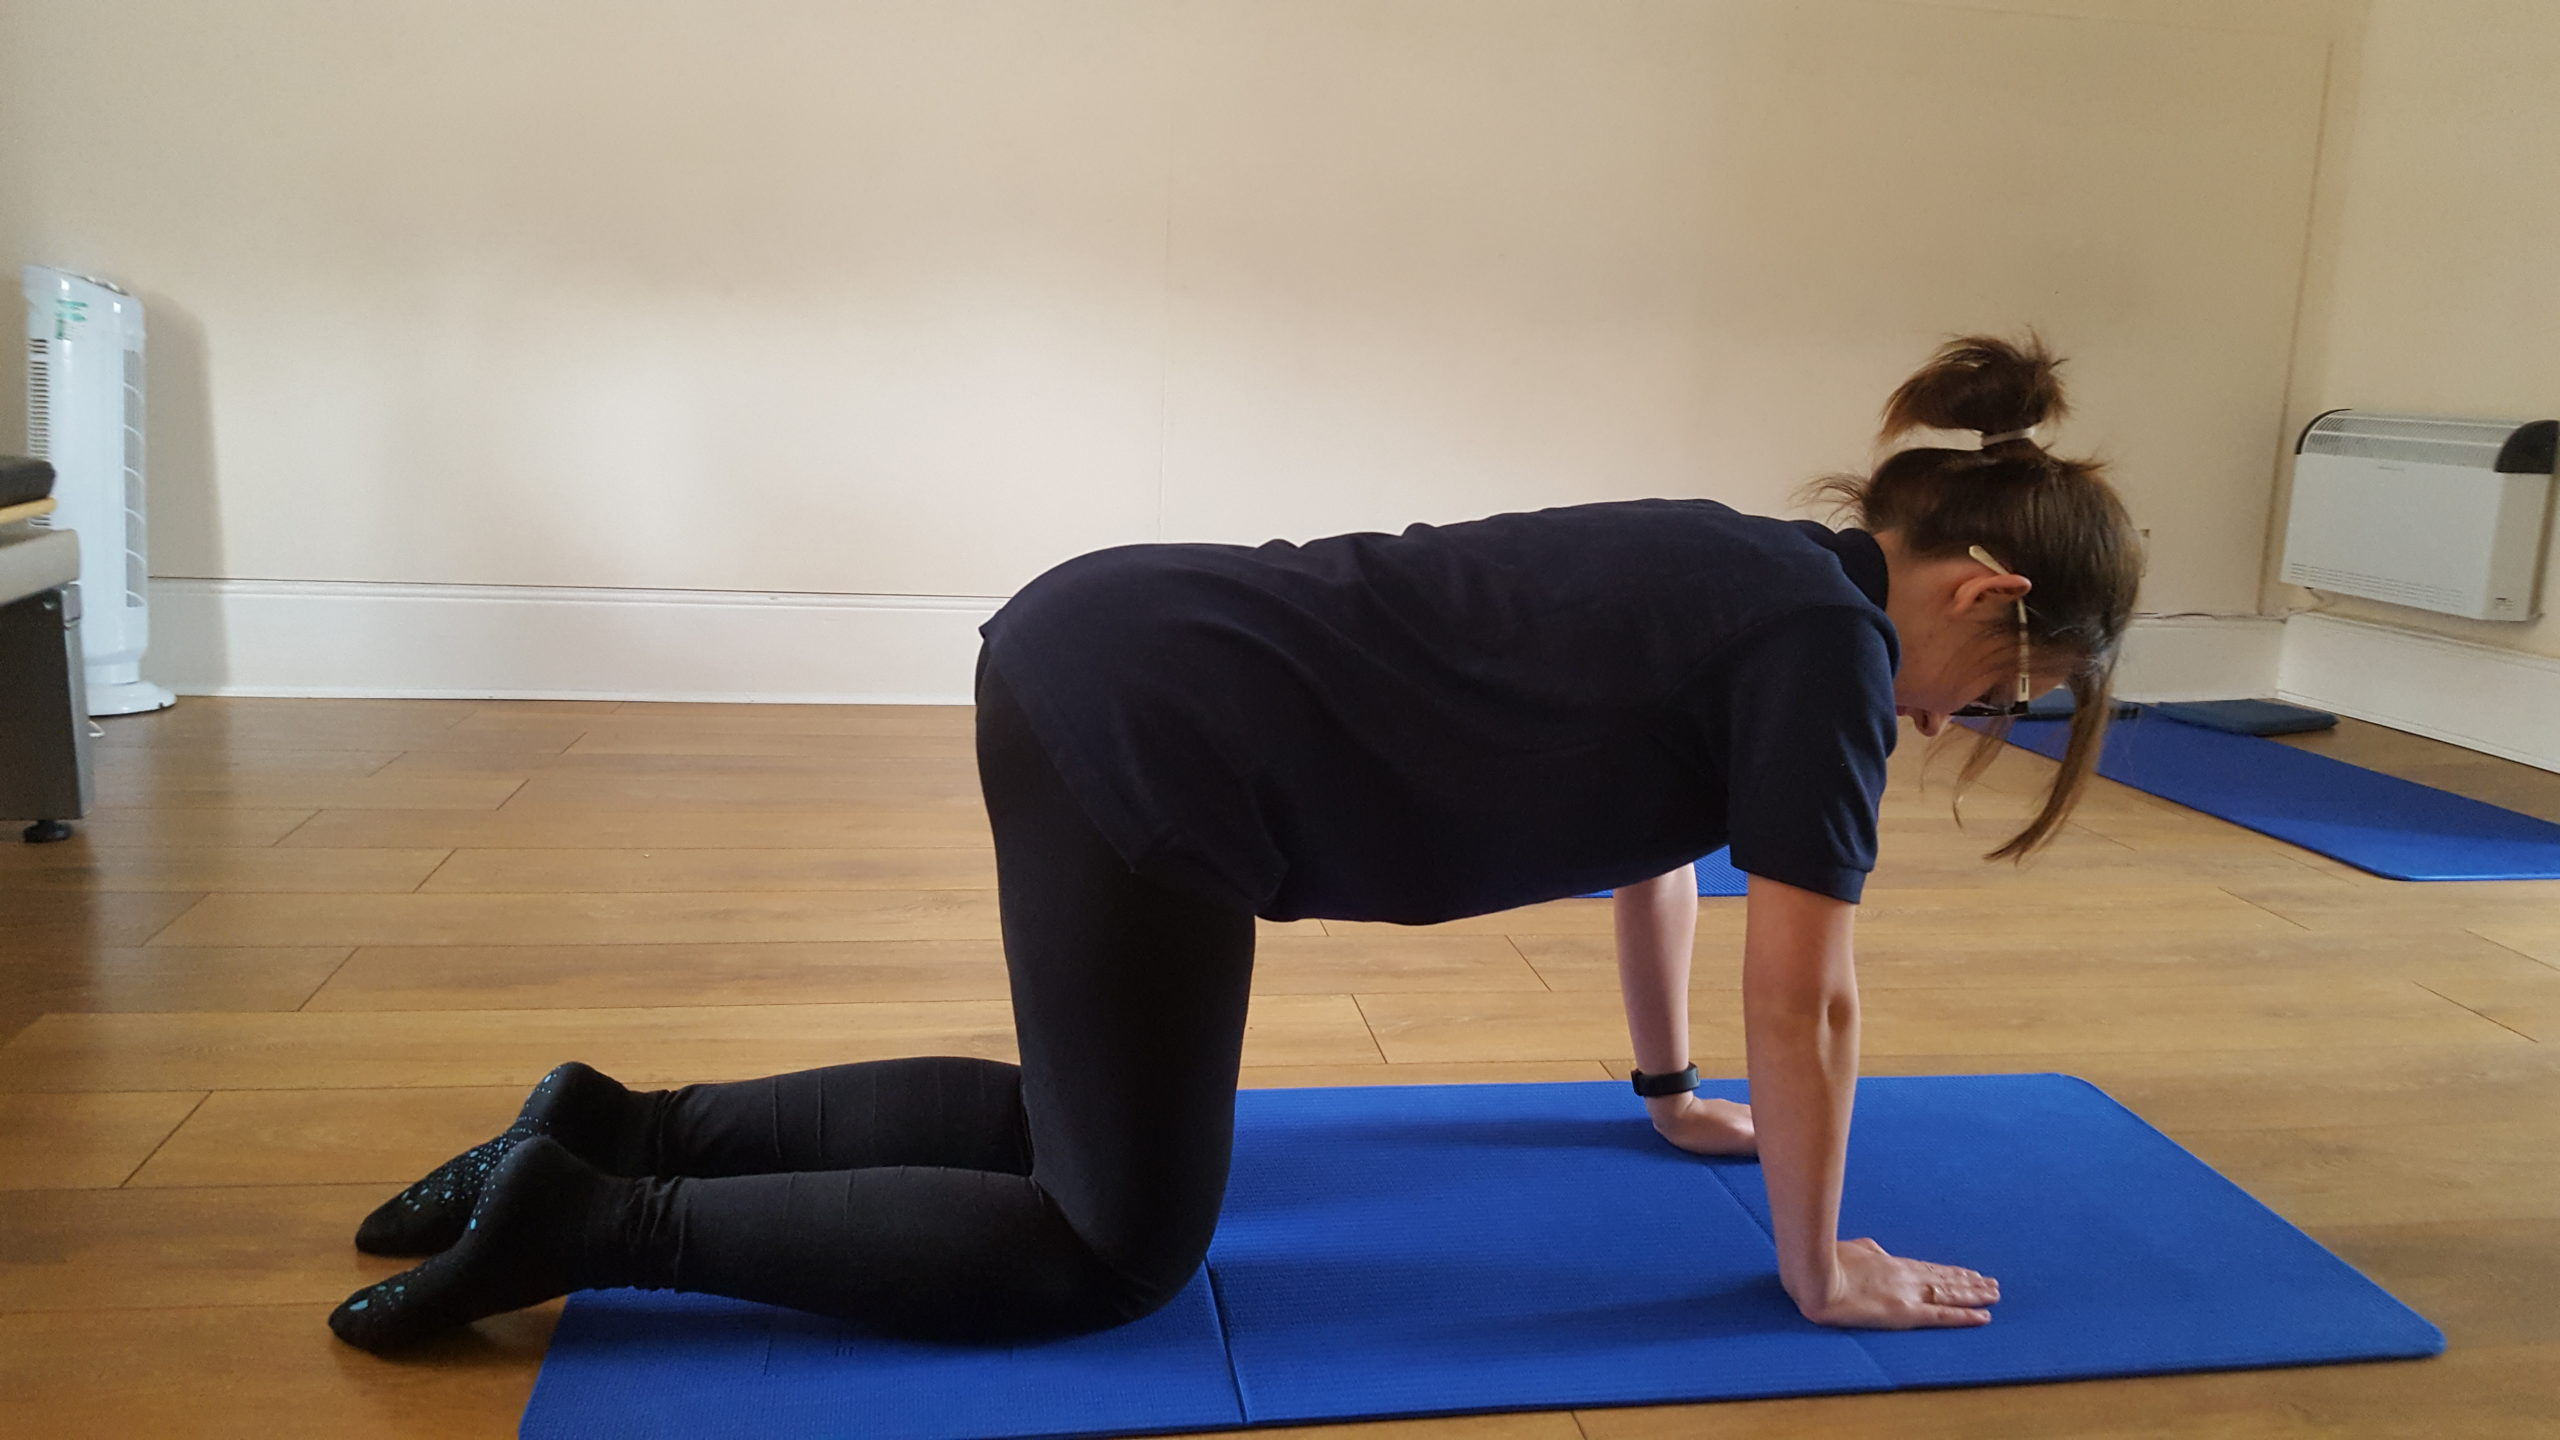 pilates for back pain - swim lane start Woodside Clinic osteopathy pilates in Leighton Buzzard